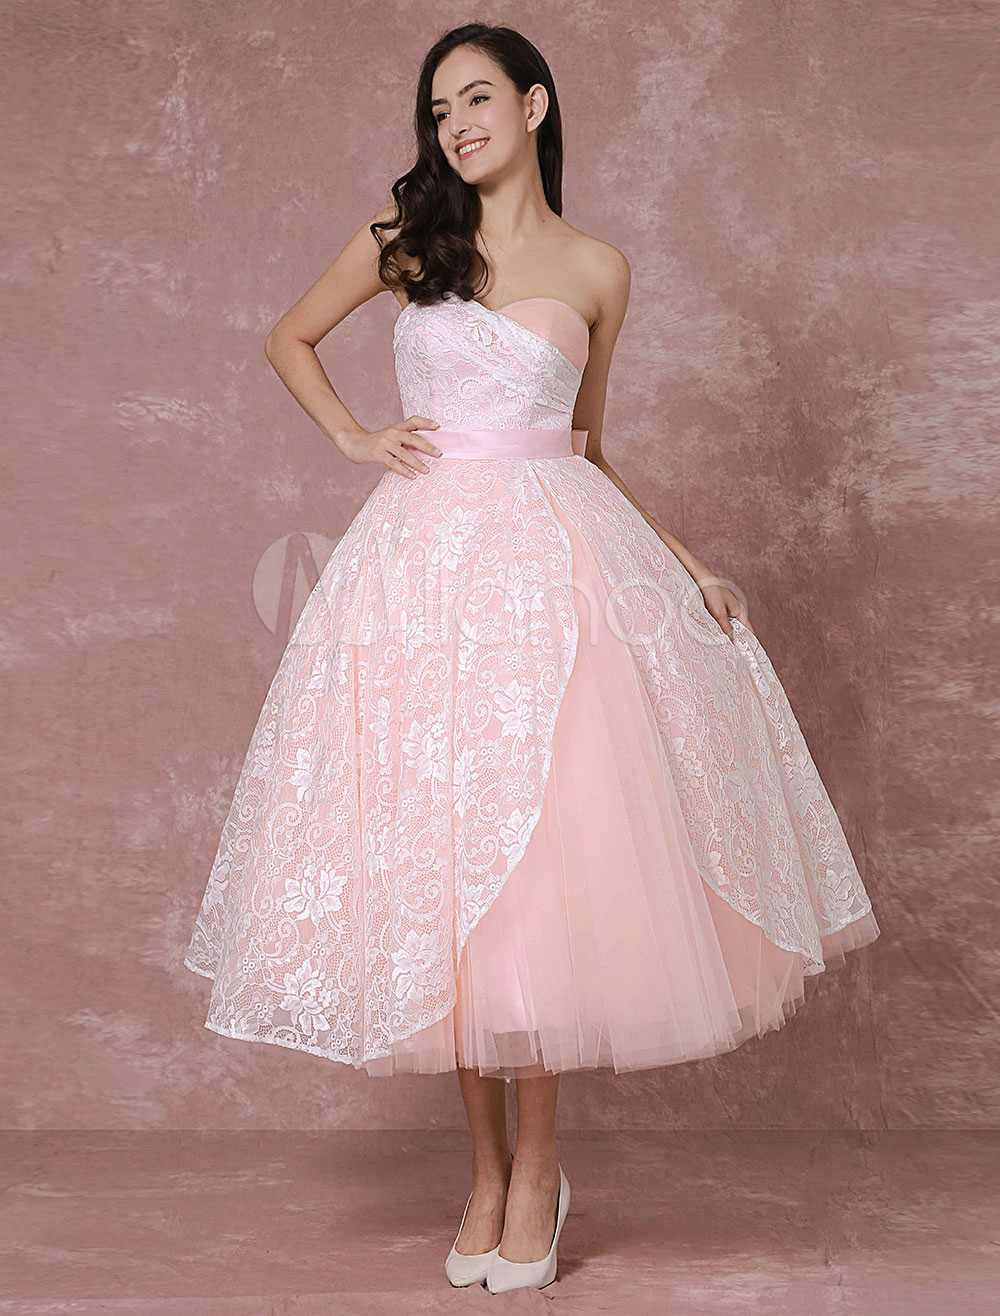 Blush Wedding Dress Short Lace Bridal Gown Pink Ball Gown Tulle Sweetheart Strapless Backless Tea-length Vintage Bridal Dress Milanoo (Pink Wedding Dress) photo